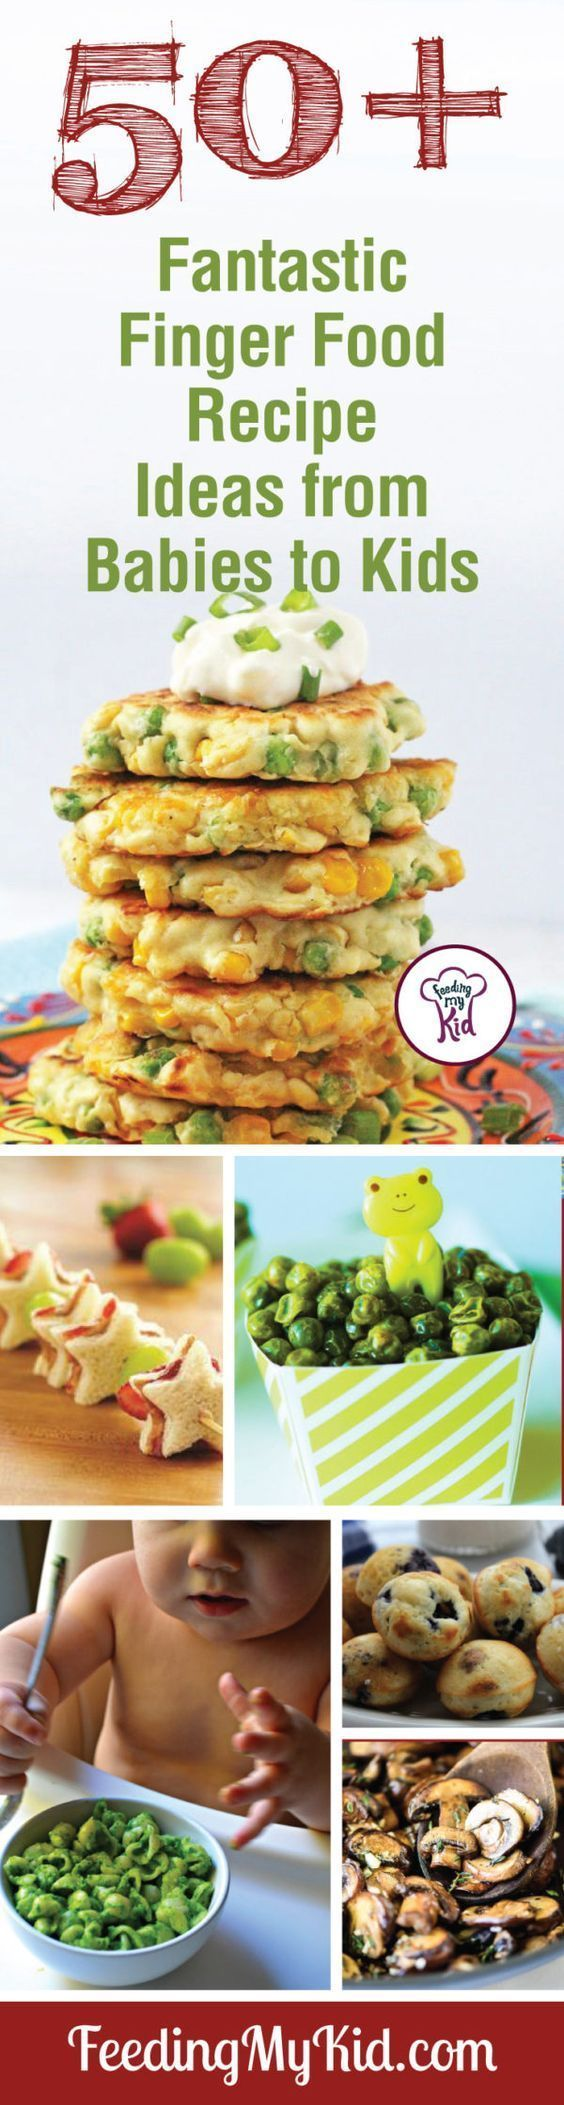 Baby finger foods with 50 recipes and ideas healthy snack ideas baby finger foods with 50 recipes and ideas healthy snack ideas desayunos saludables desayuno y saludable forumfinder Gallery